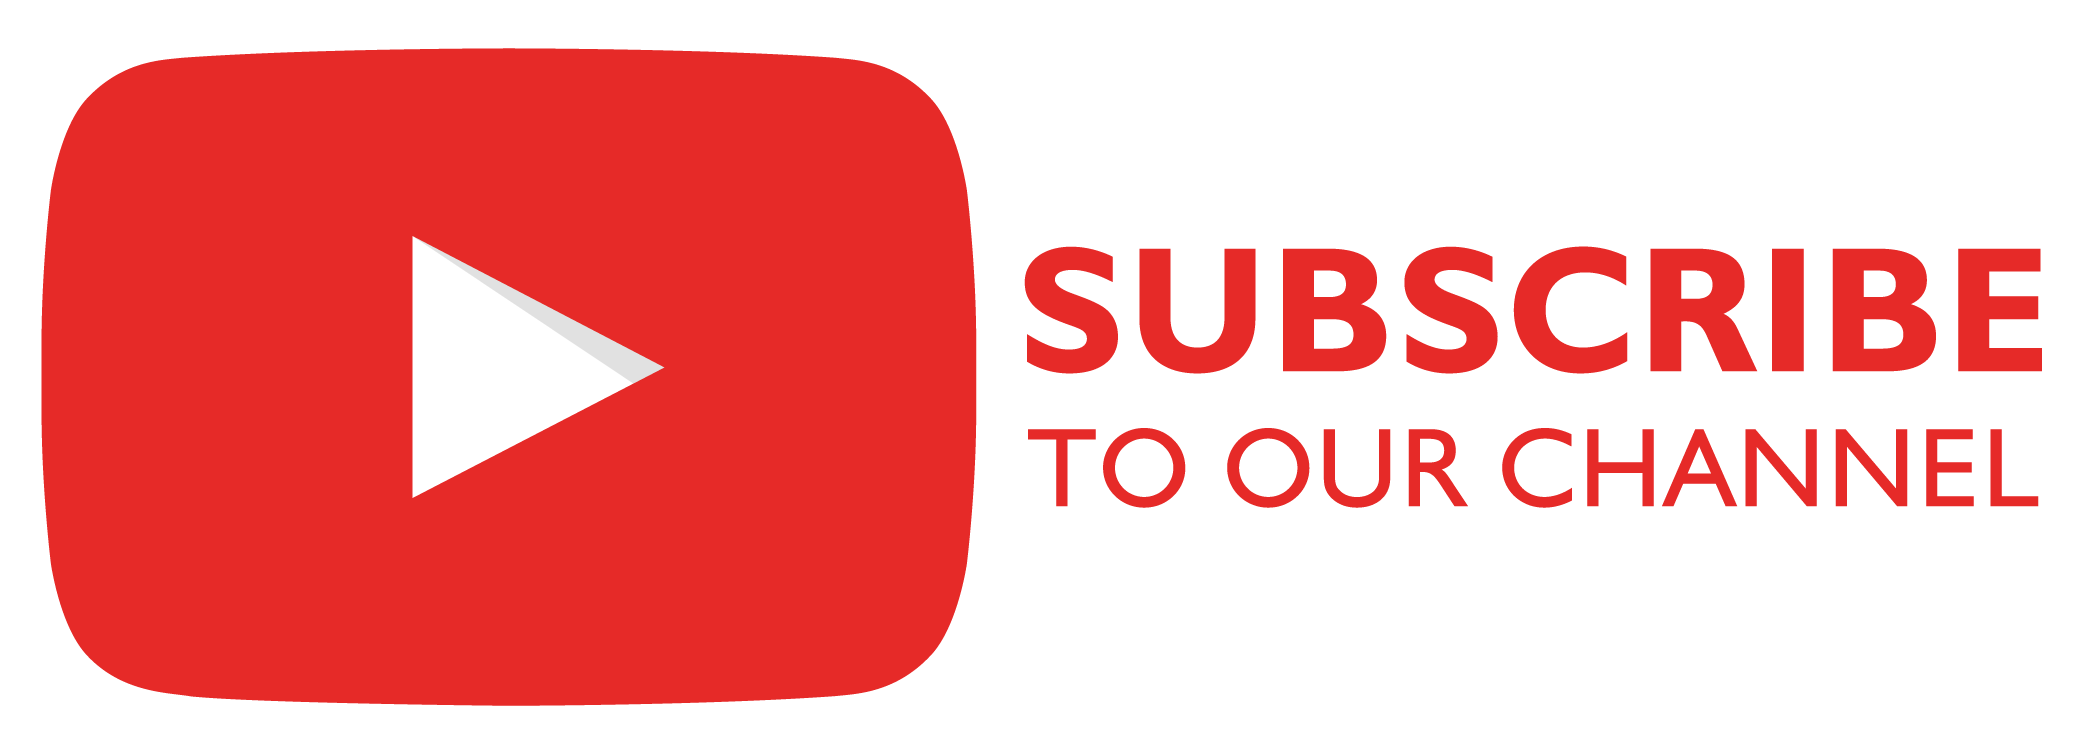 Youtube subscribe png. To our channel